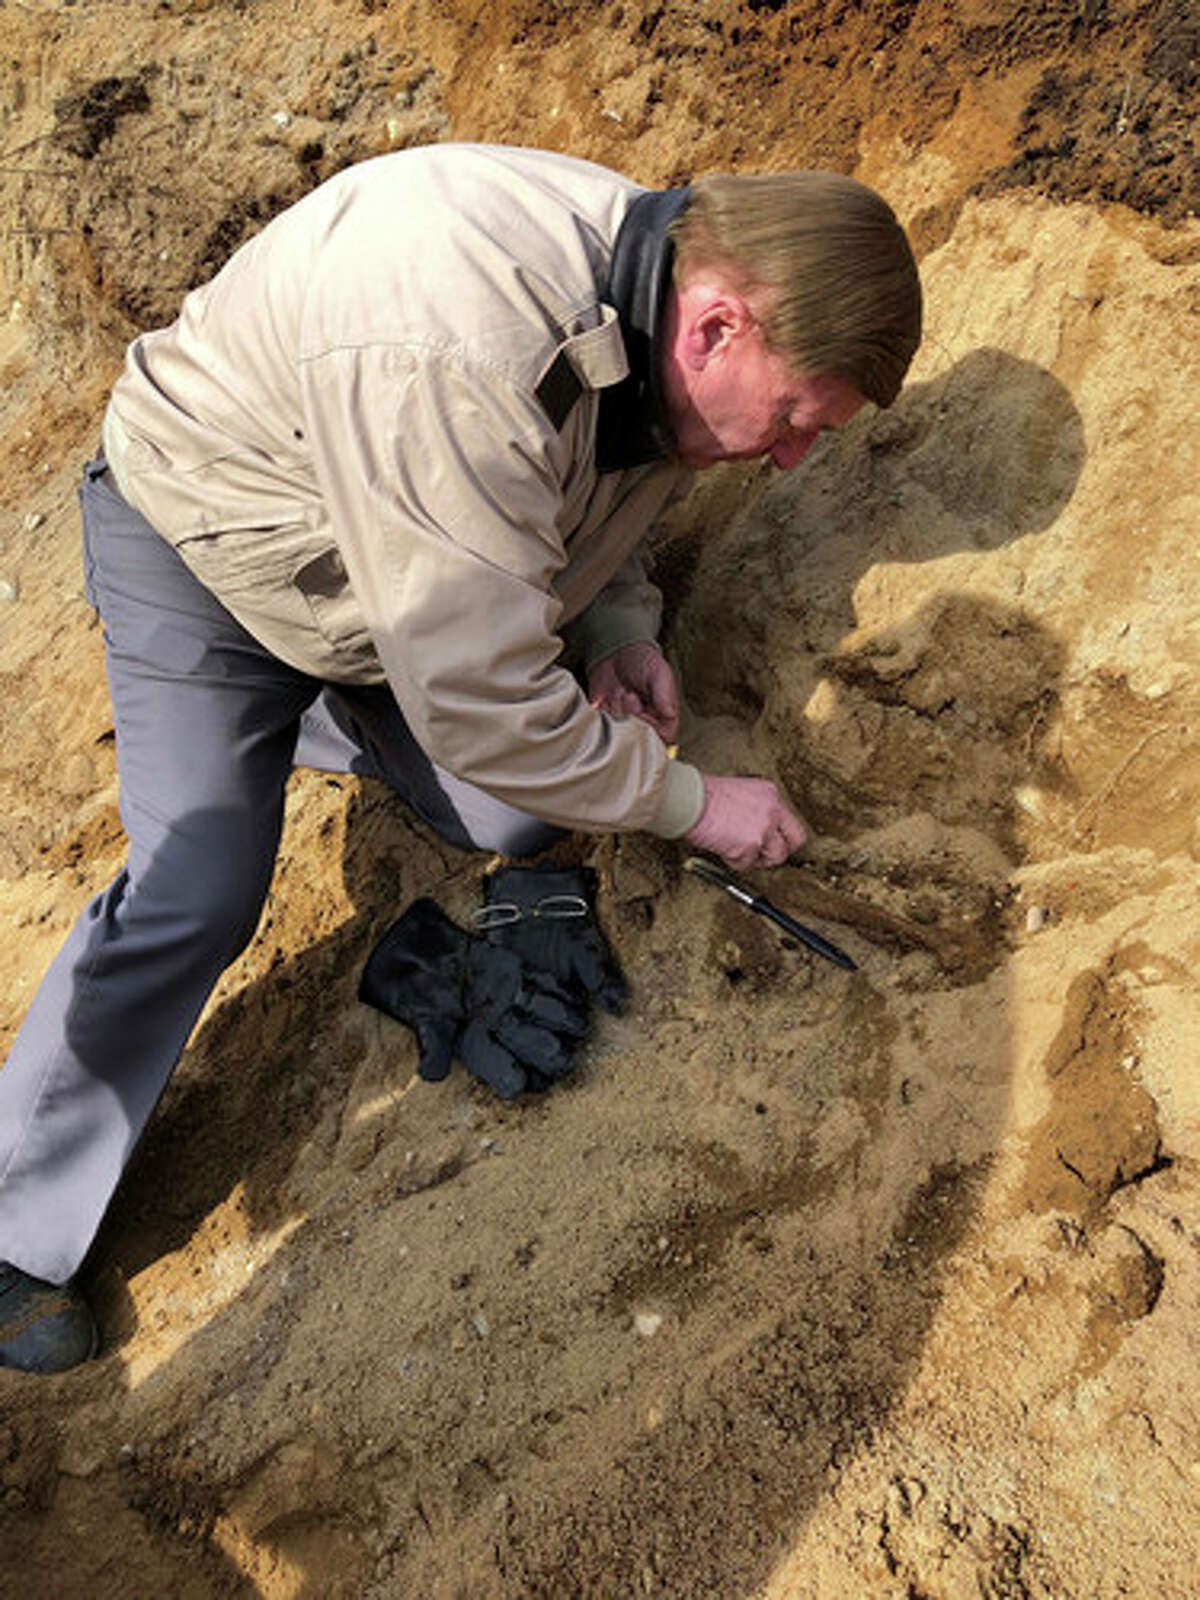 In this Feb. 11, 2019 photo provided by Michael S. Borgos, Esq., local archeologist David Starbuck searches for artifacts in a construction site in Lake George, N.Y., after skeletal remains were found of people believed to have died during the Revolutionary War. Skeletal remains of as many as 11 people believed to have died during the Revolutionary War have been uncovered at a construction site in upstate New York, a lawyer for the couple who owns the property told The Associated Press Tuesday, Feb. 12, 2019.